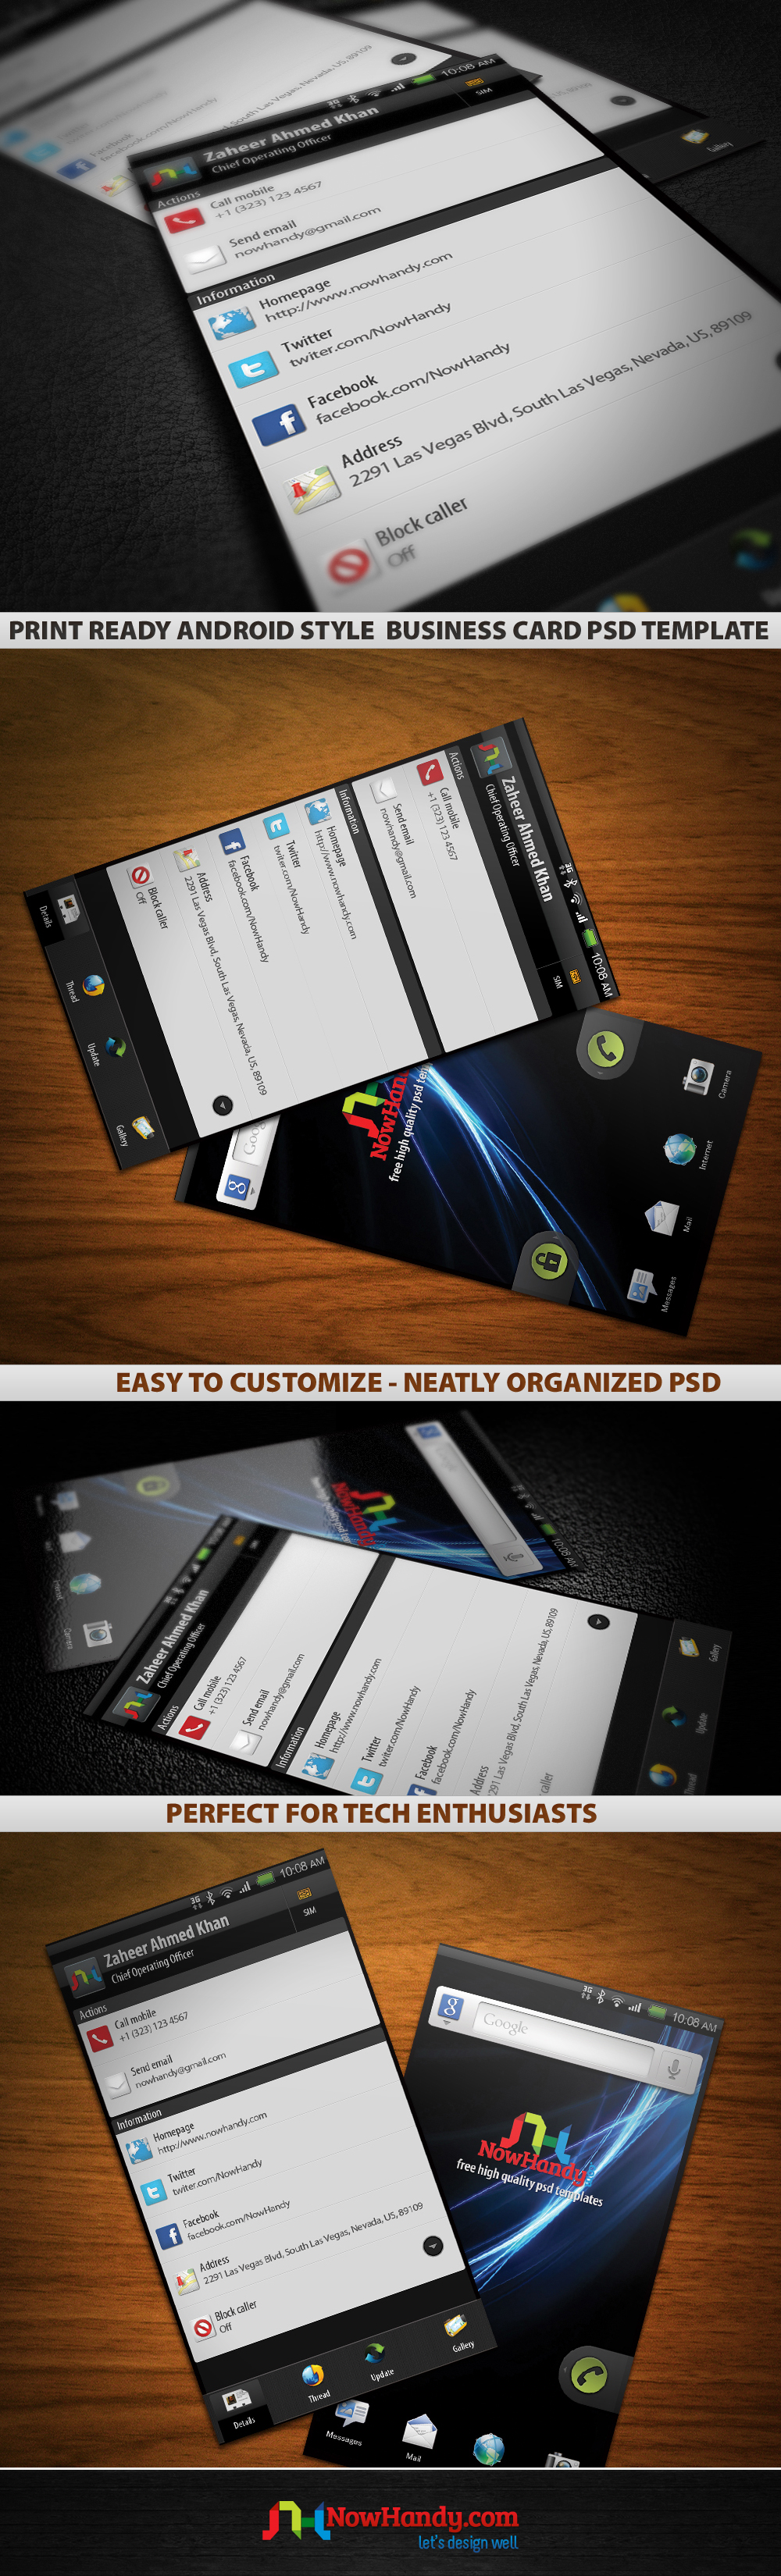 free print ready android based business card template design [psd